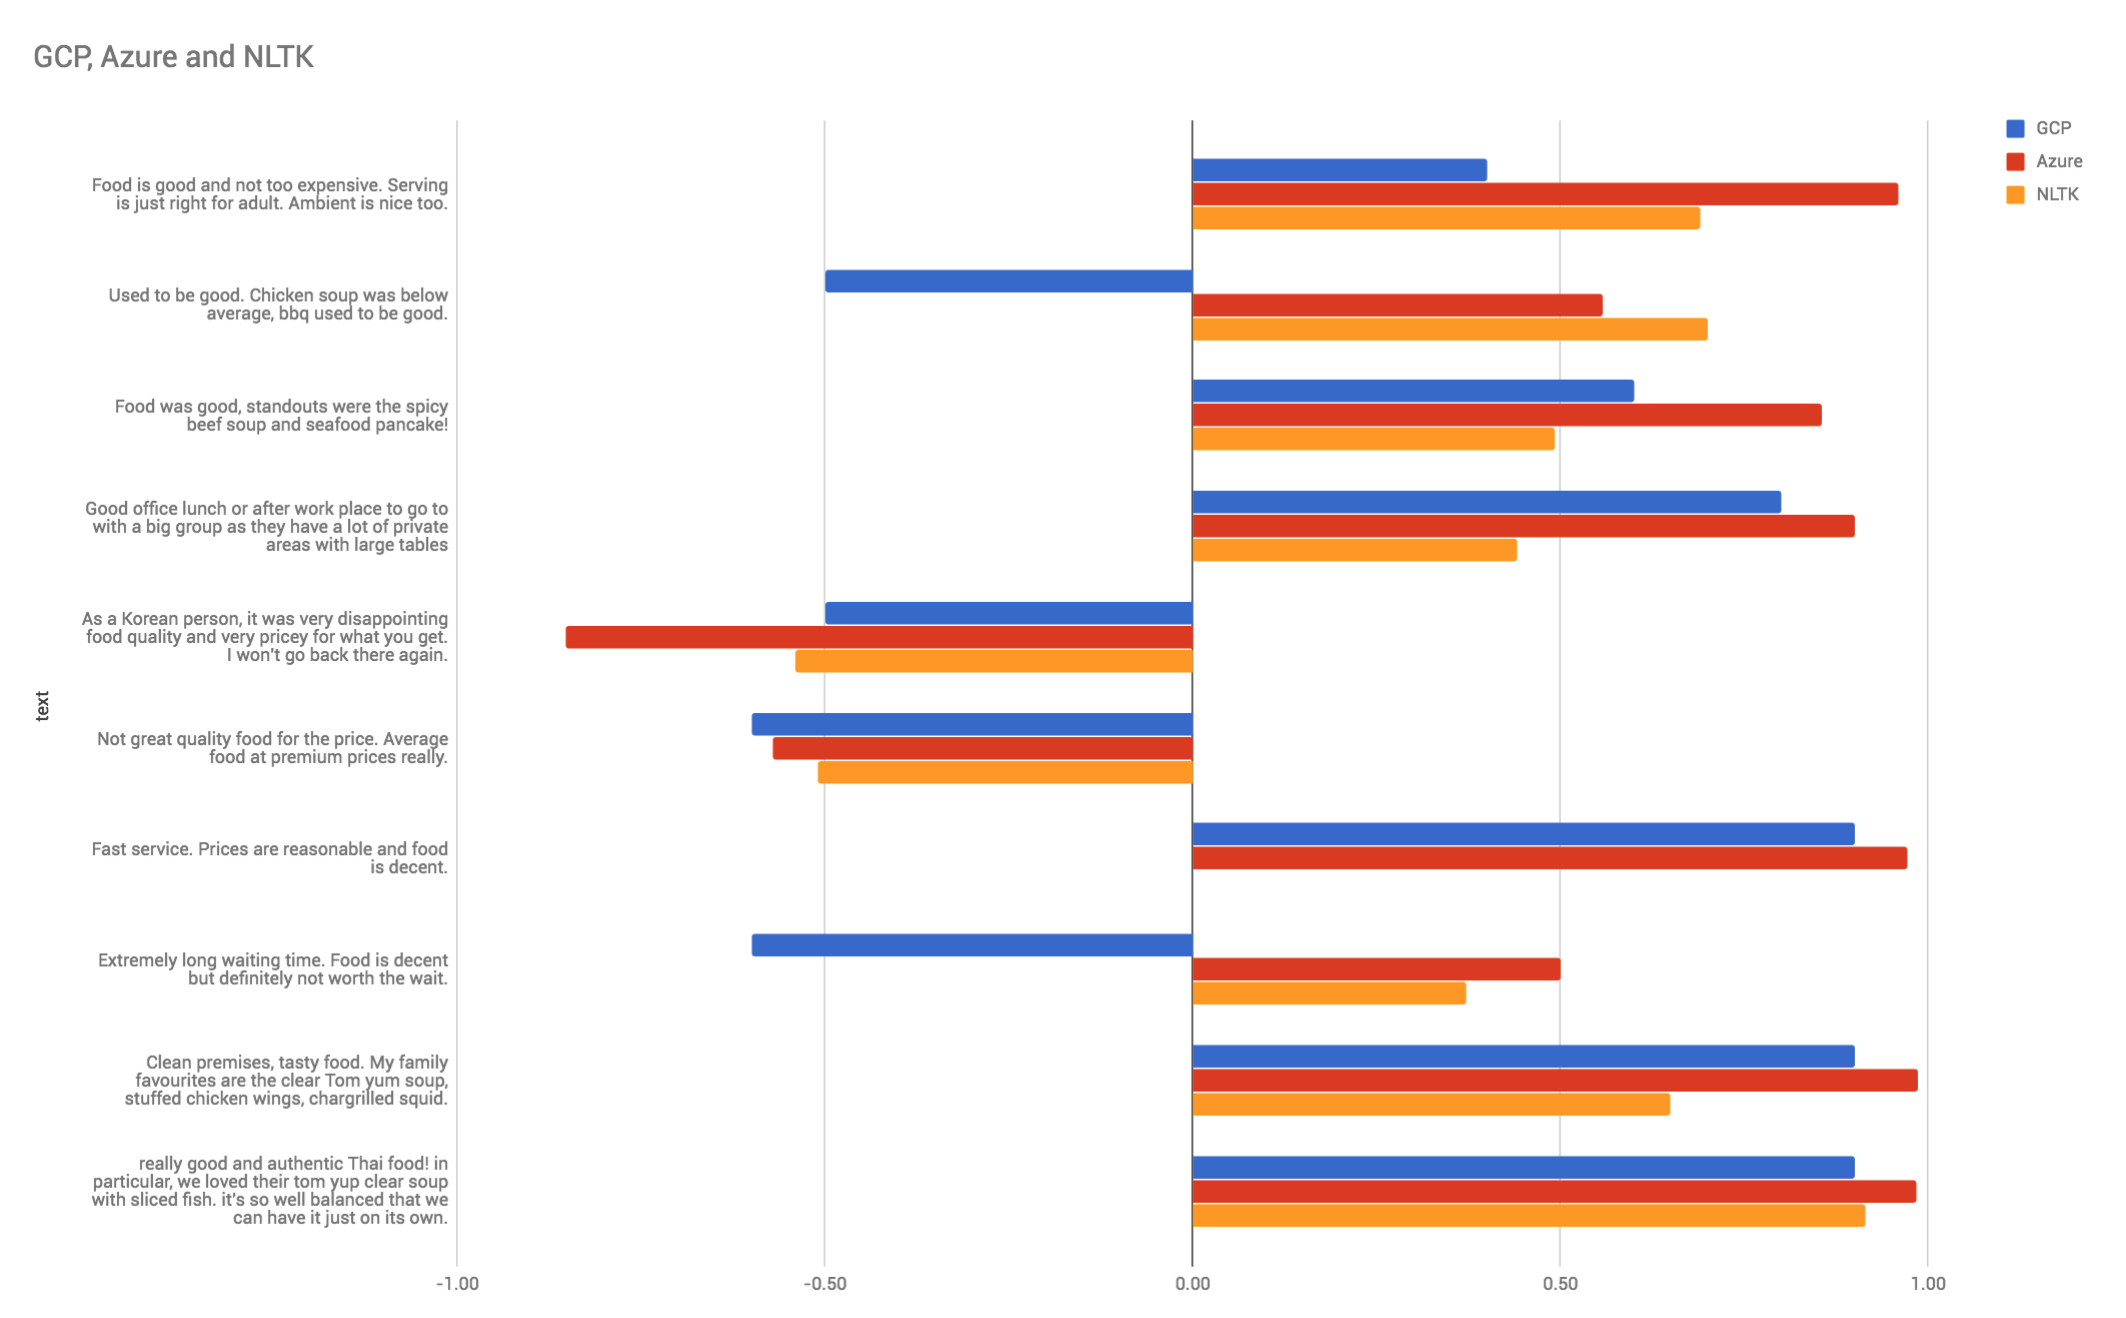 Comparison of Azure, Google Cloud Platform and NLTK's Sentiment Analysis methods